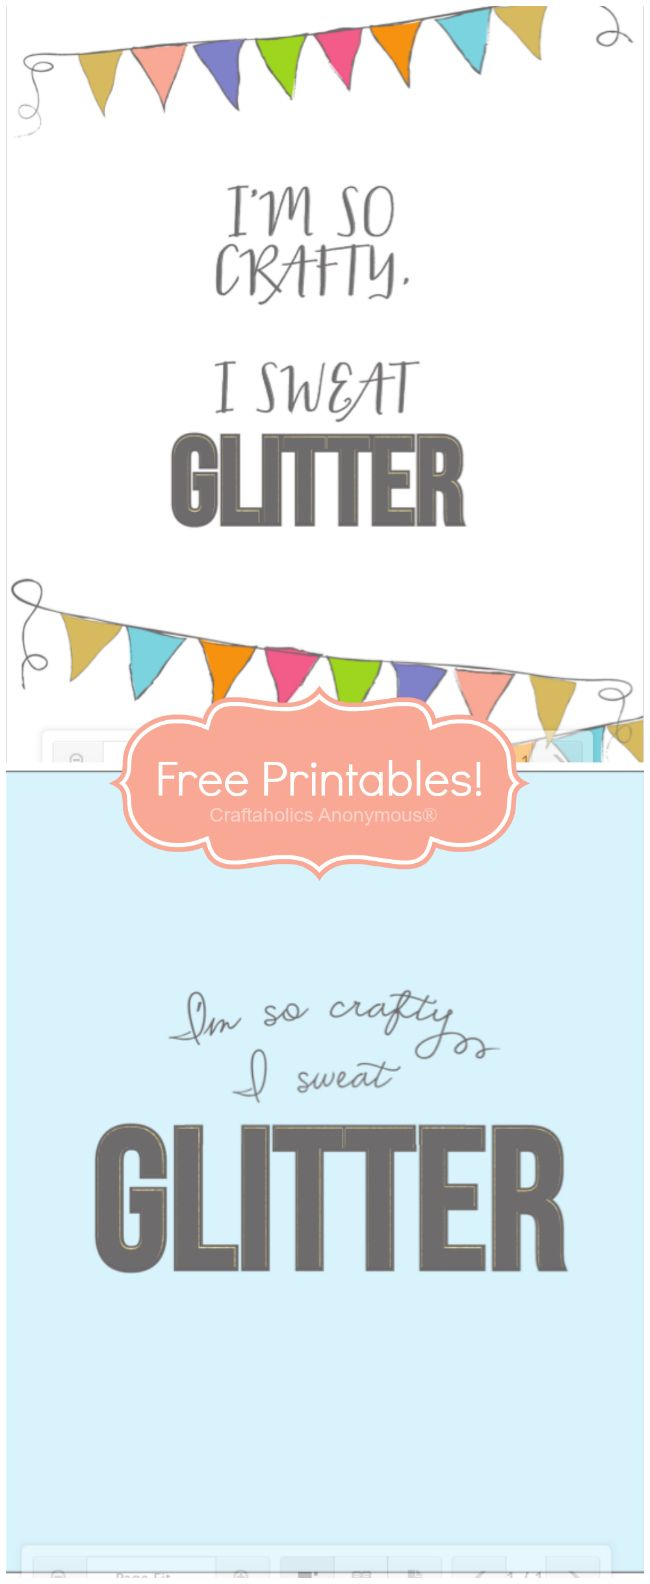 I'm so crafty I sweat glitter! {Free printable} This is so perfect!!